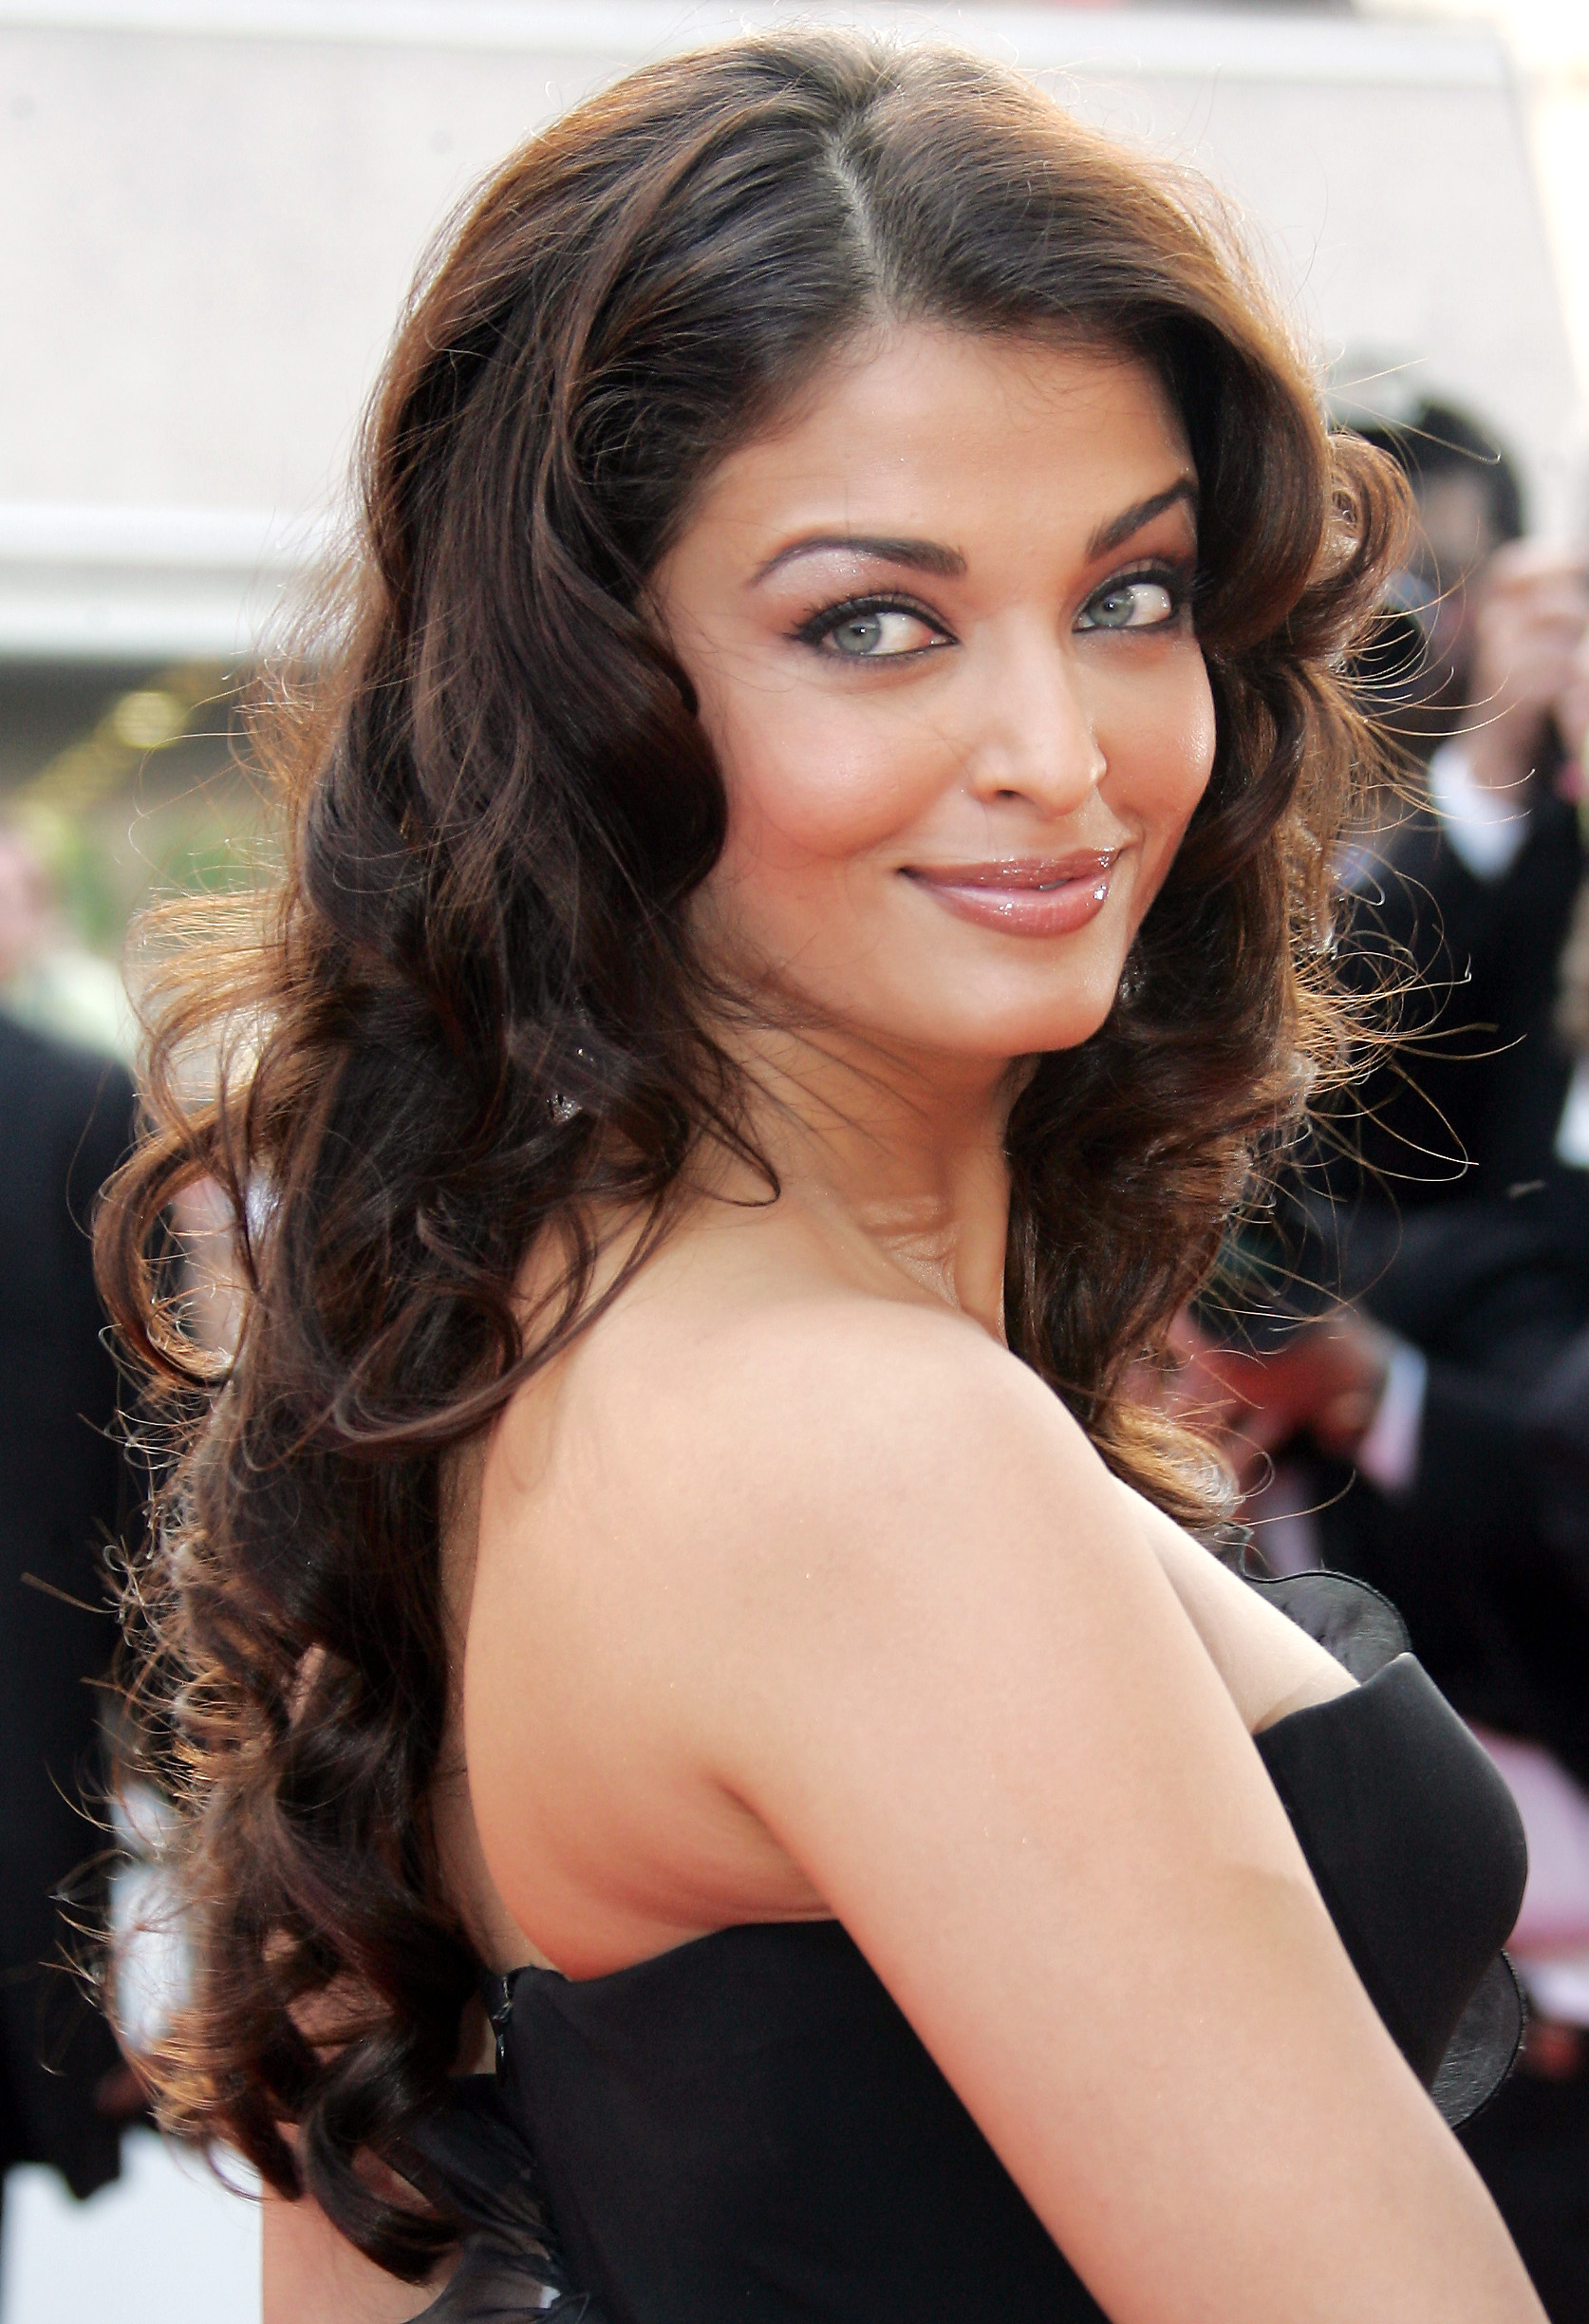 aishwarya rai, miss world 1994. Mvqhtoal